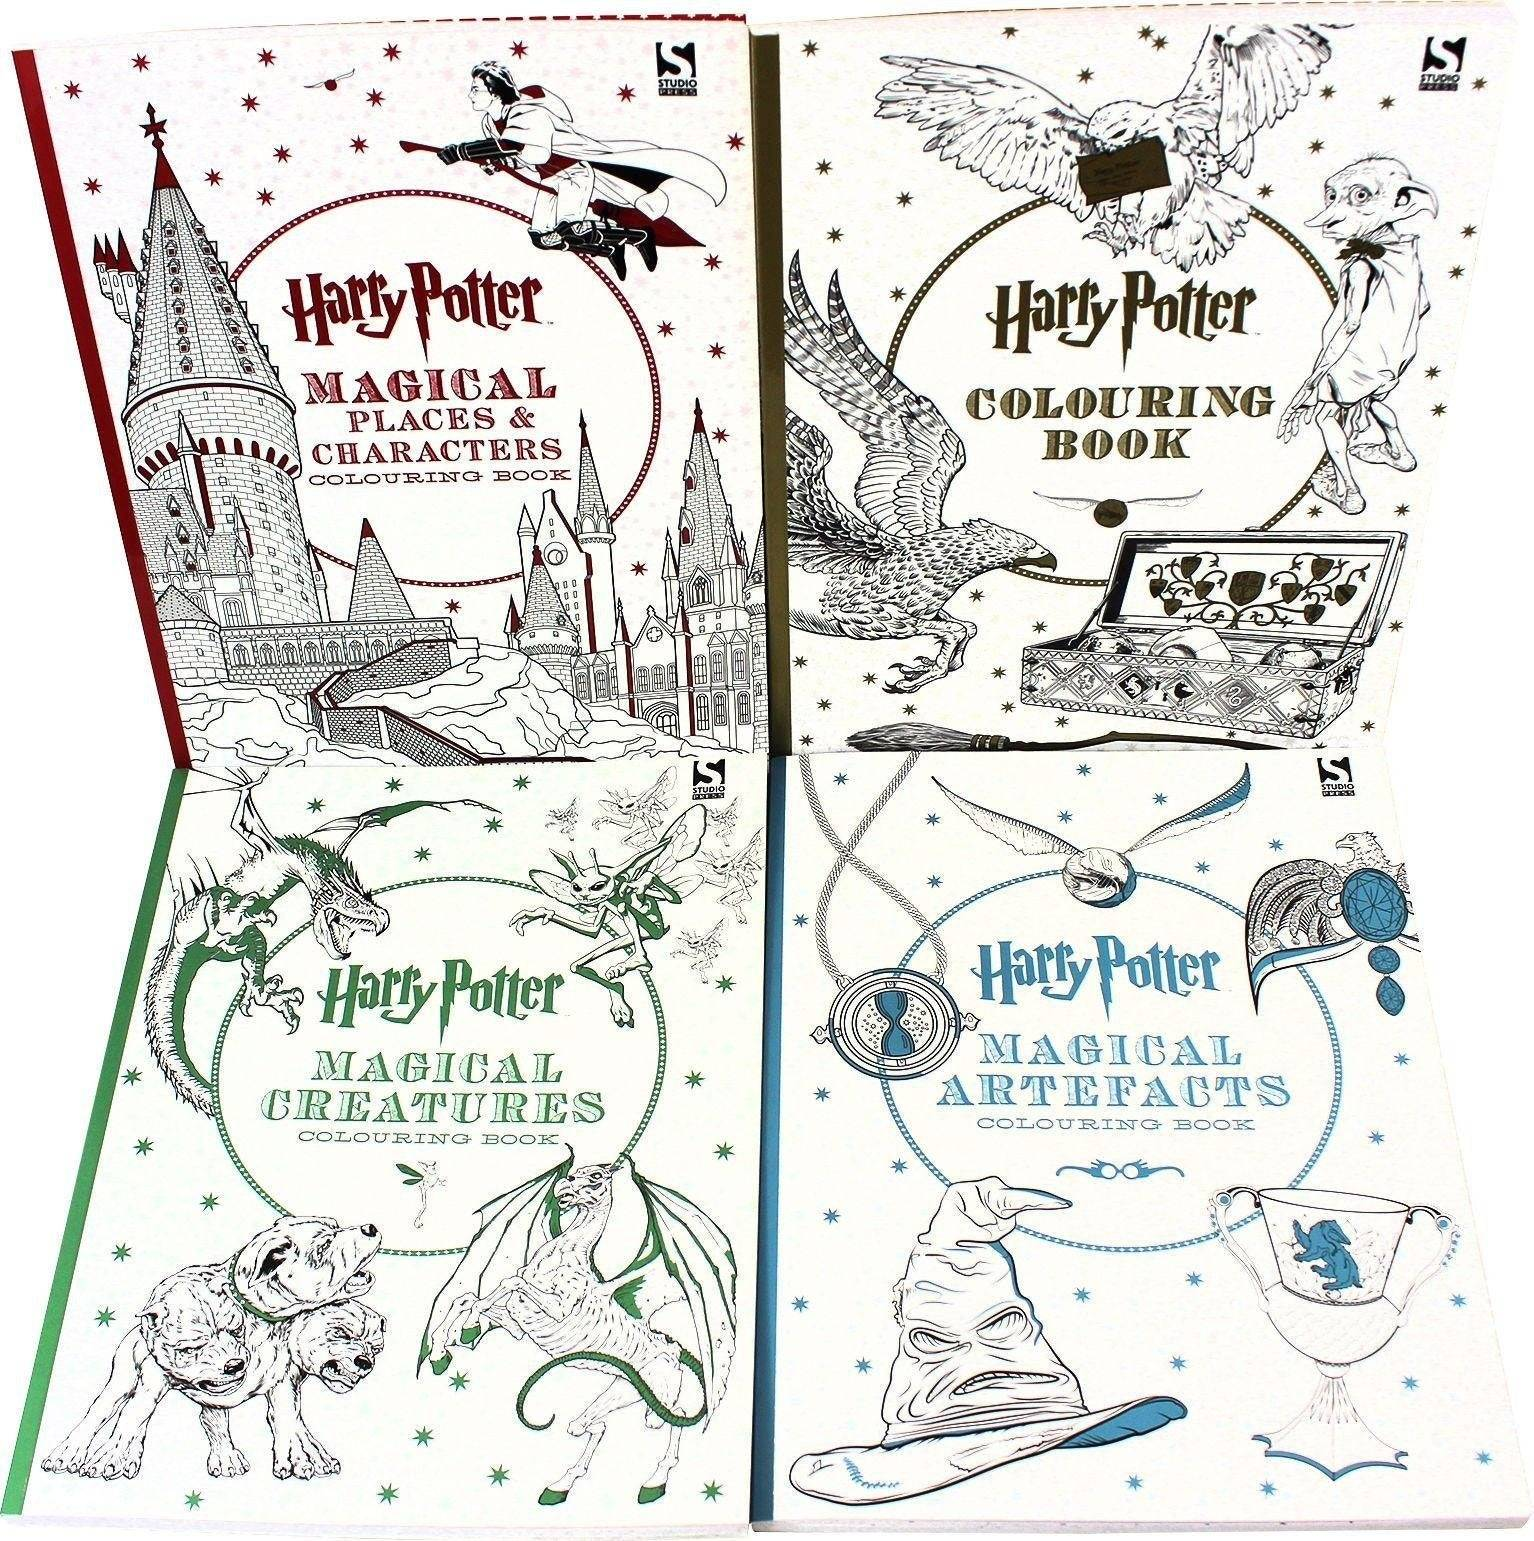 Studio Press Harry Potter 4 Colouring Books Collection Set By Warner Brothers - Paperback